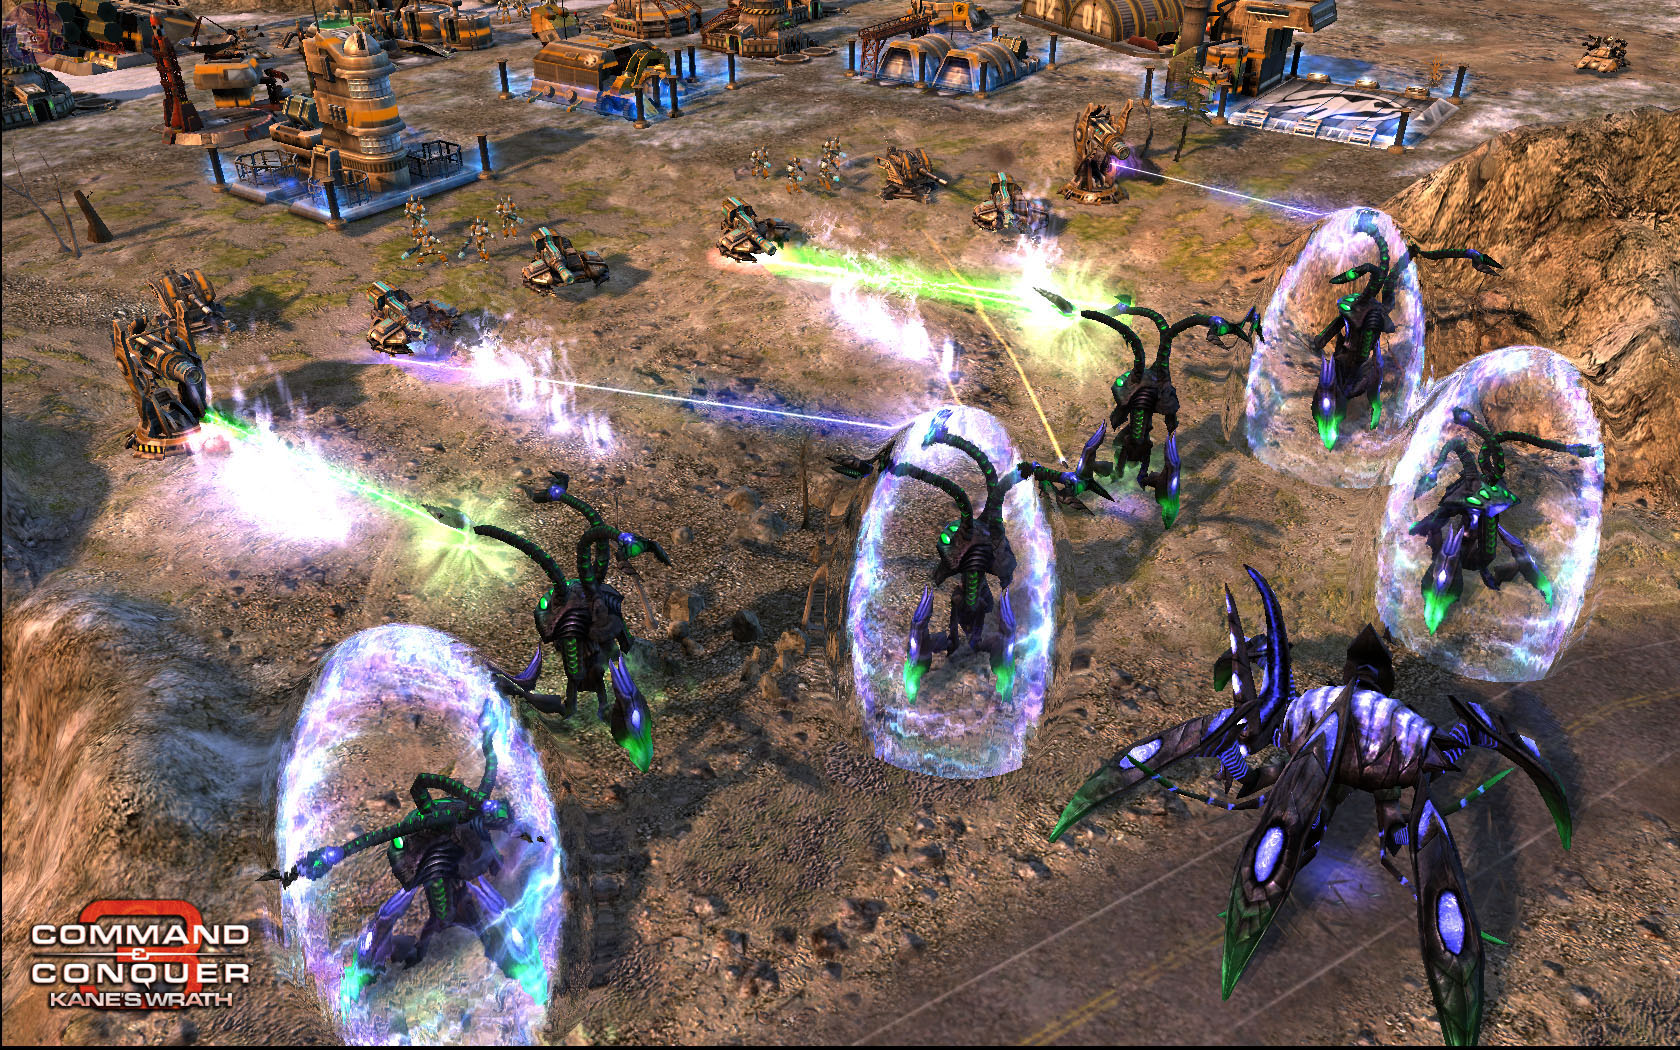 Command and conquer 3 kane s wrath reloaded 0.7